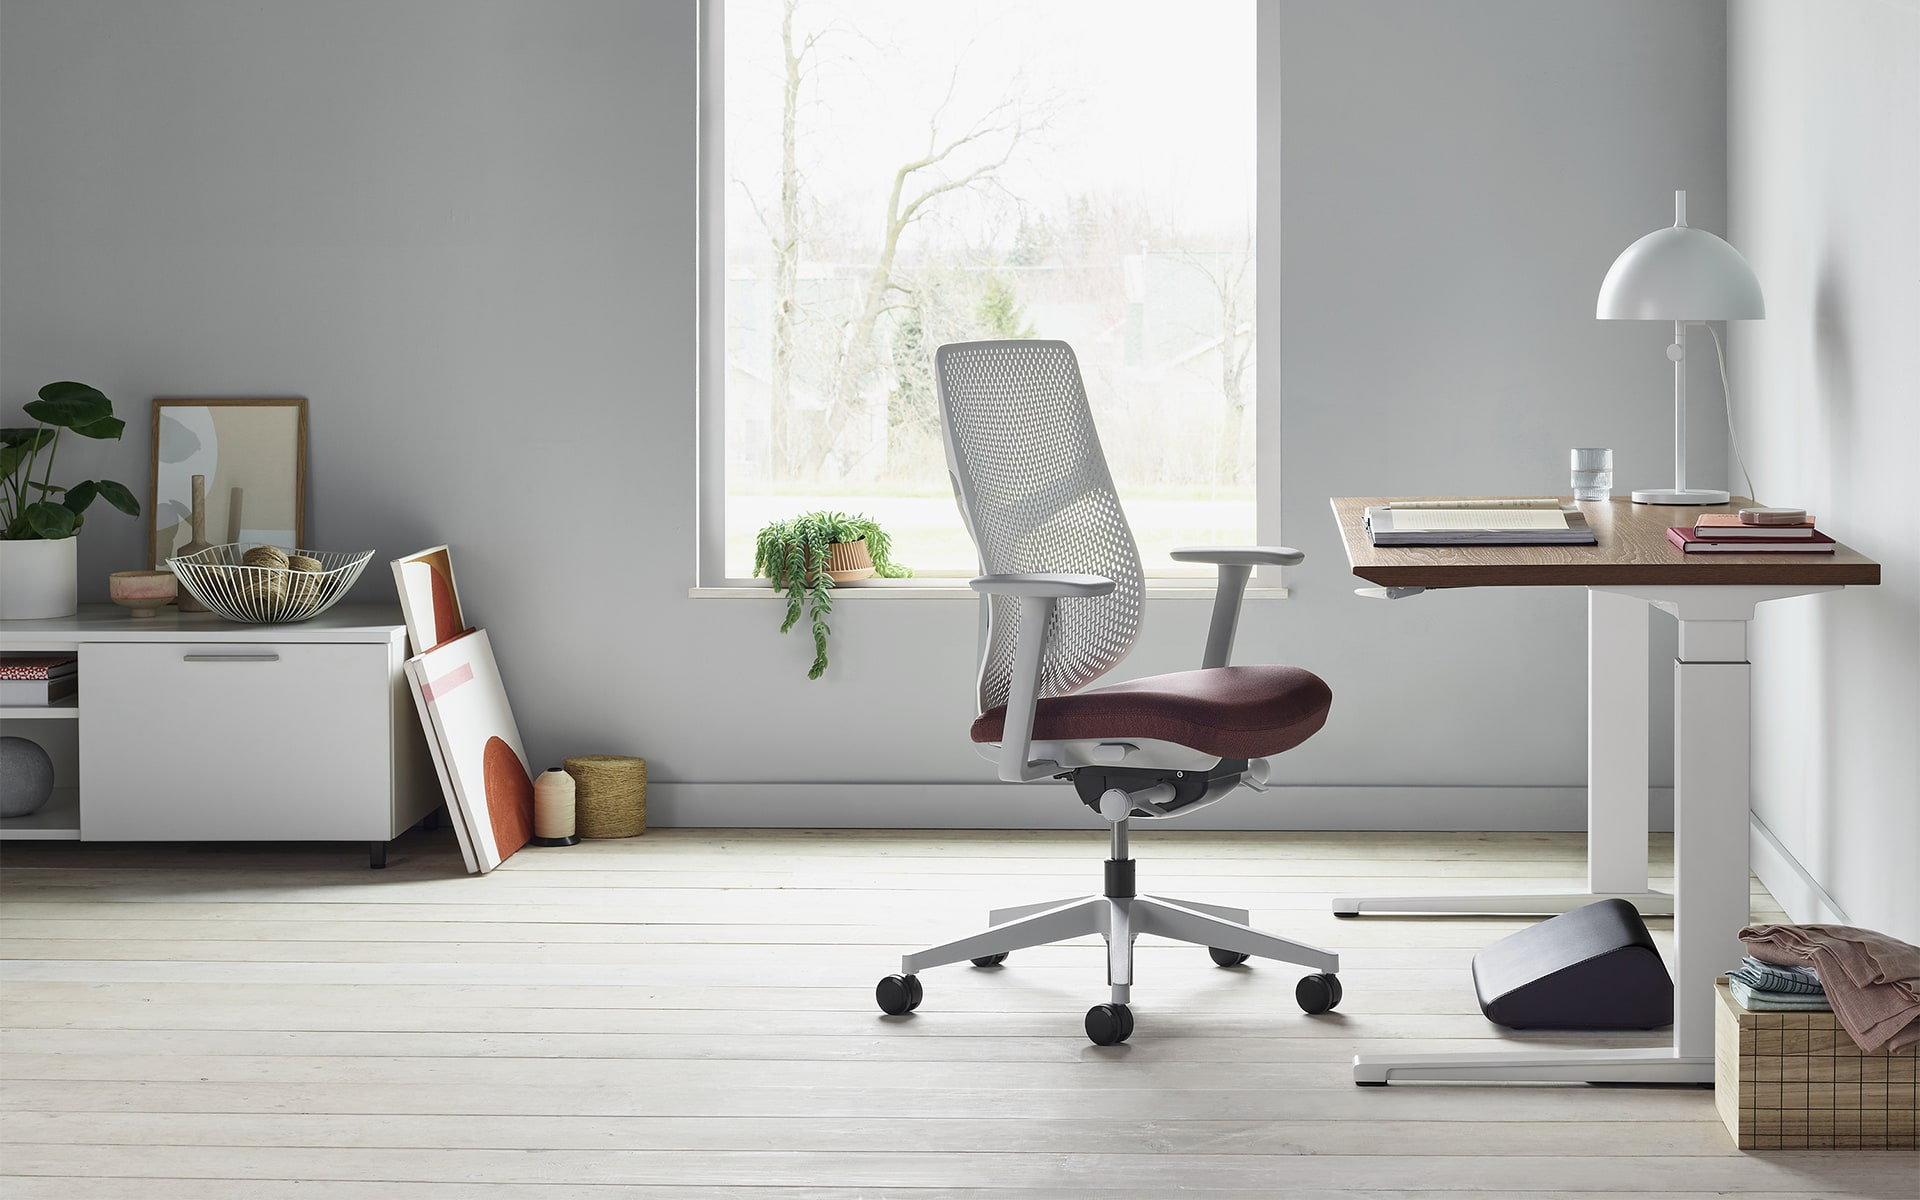 A Hermann Miller Verus office chair by ITO Design with light grey perforated backrest and berry-colored seat cushion in modern home office